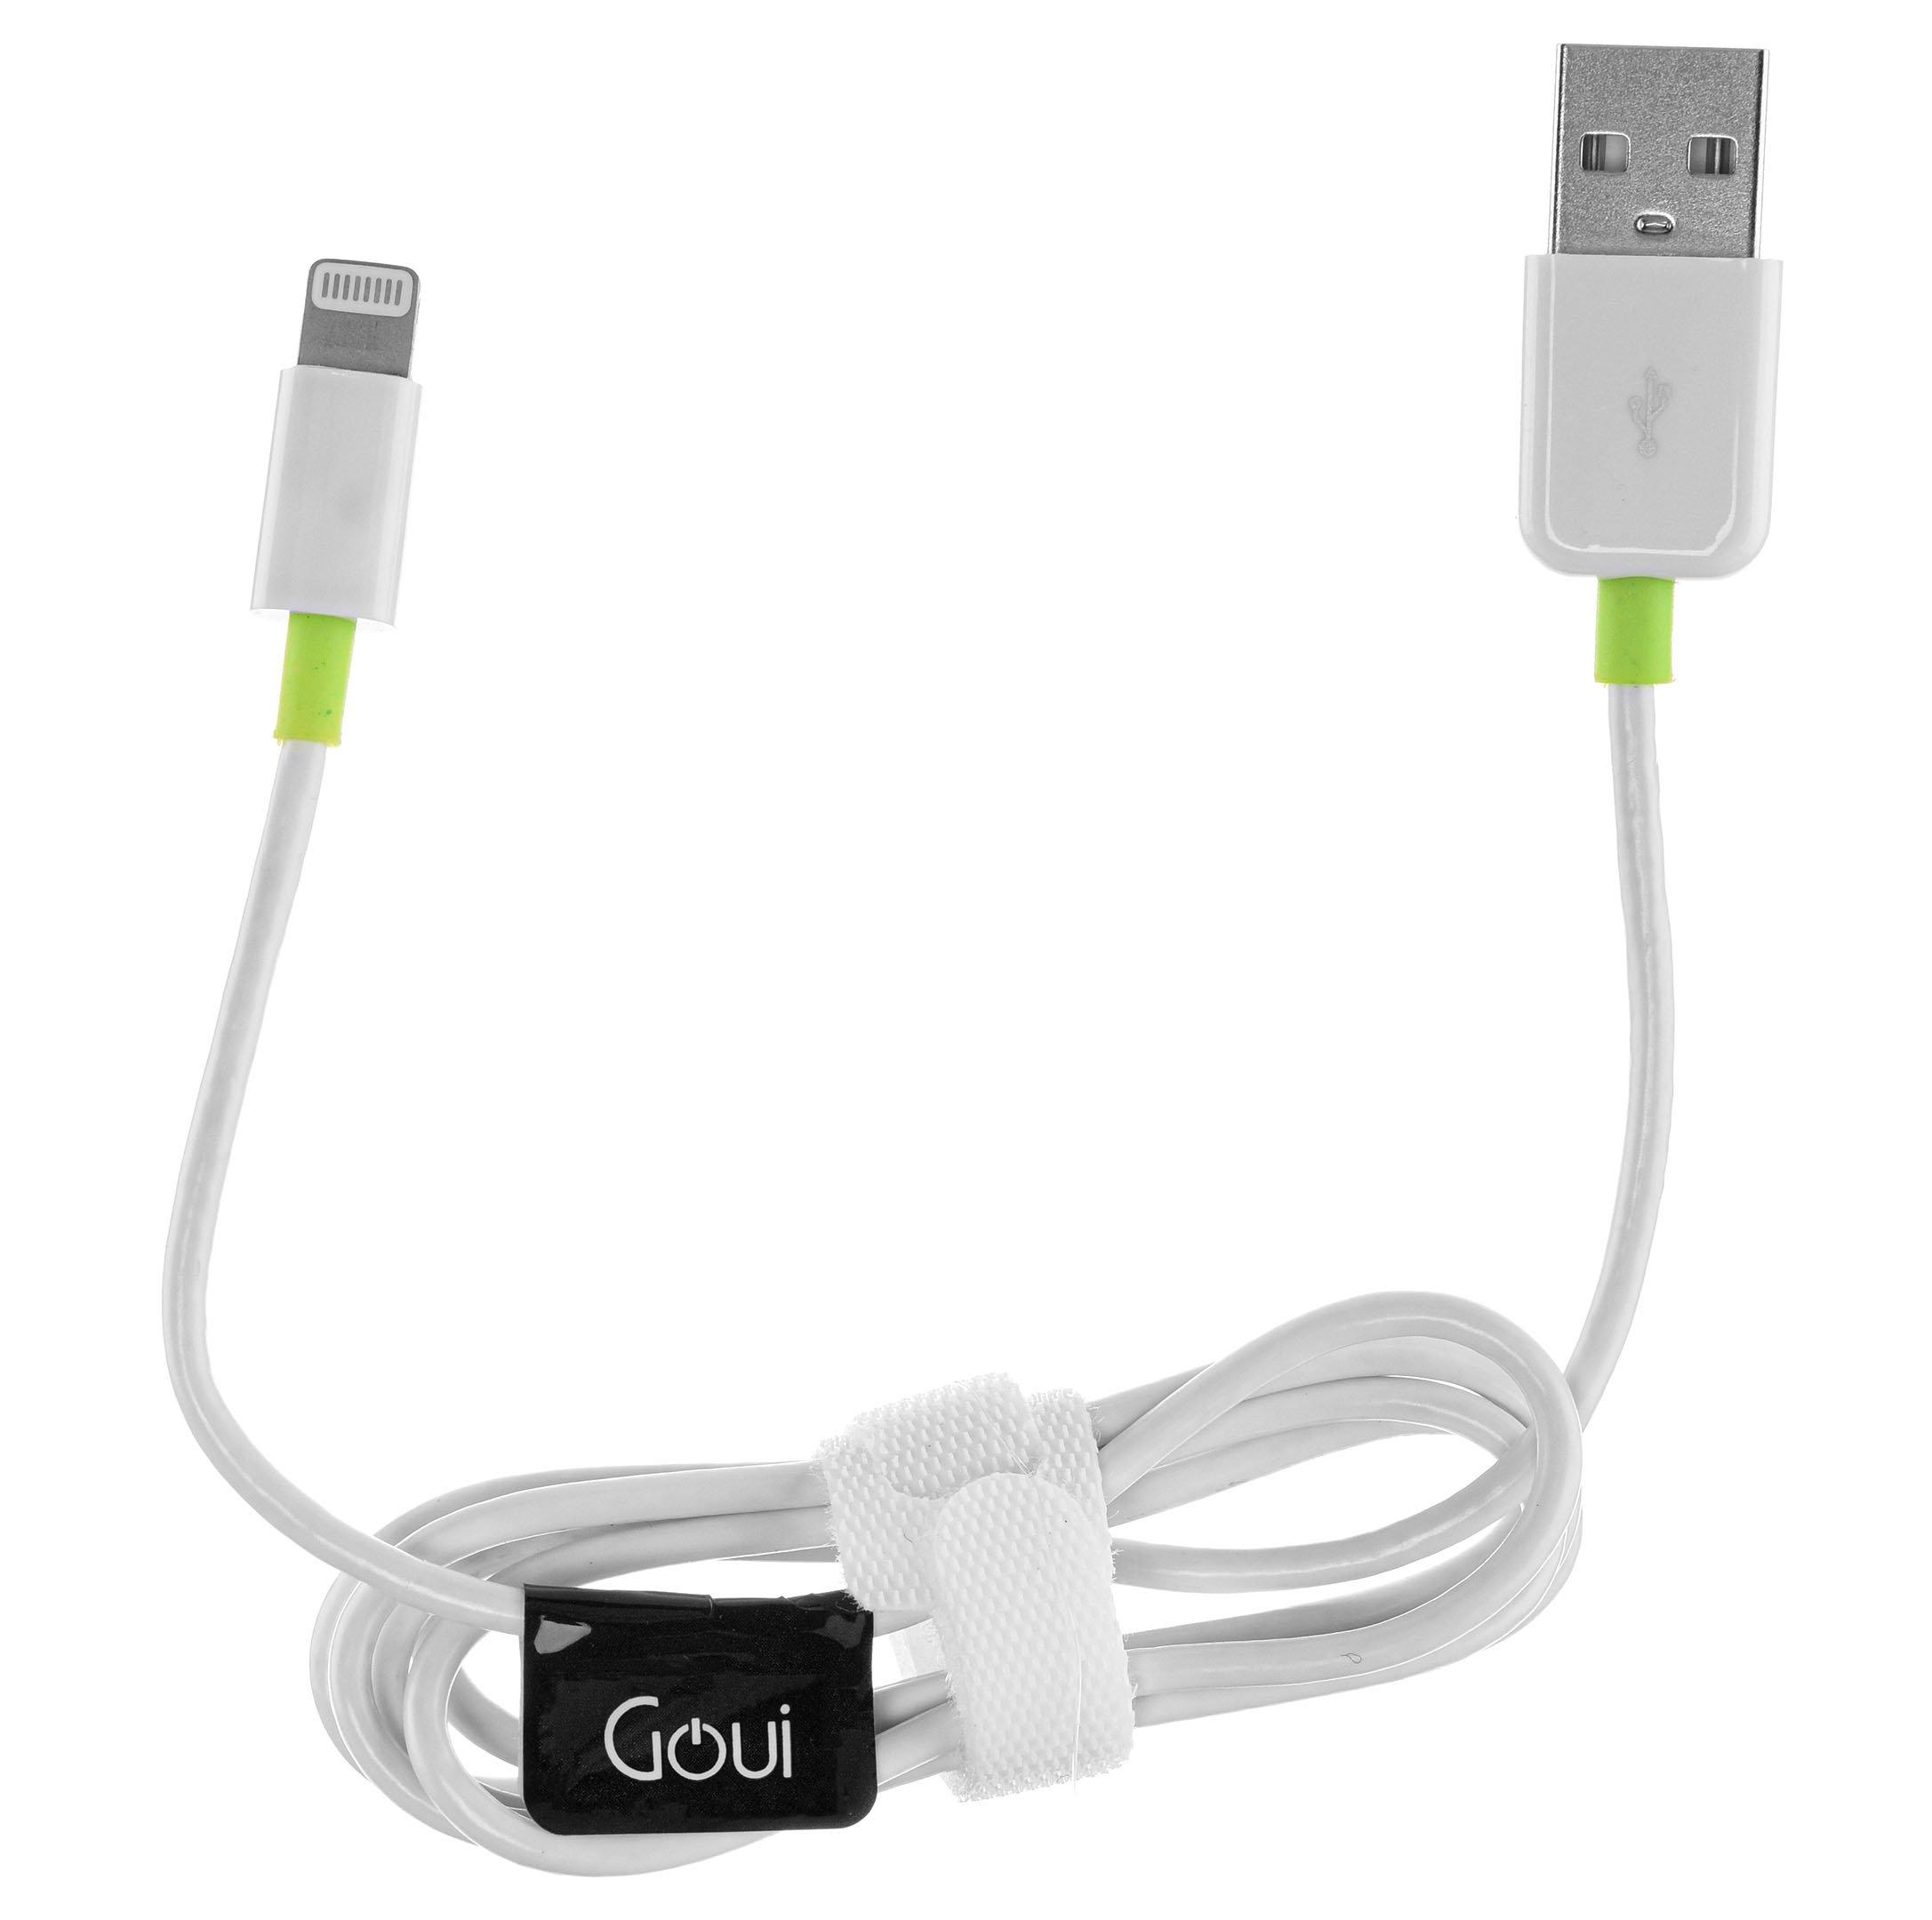 Goui Lightning USB Cable, White